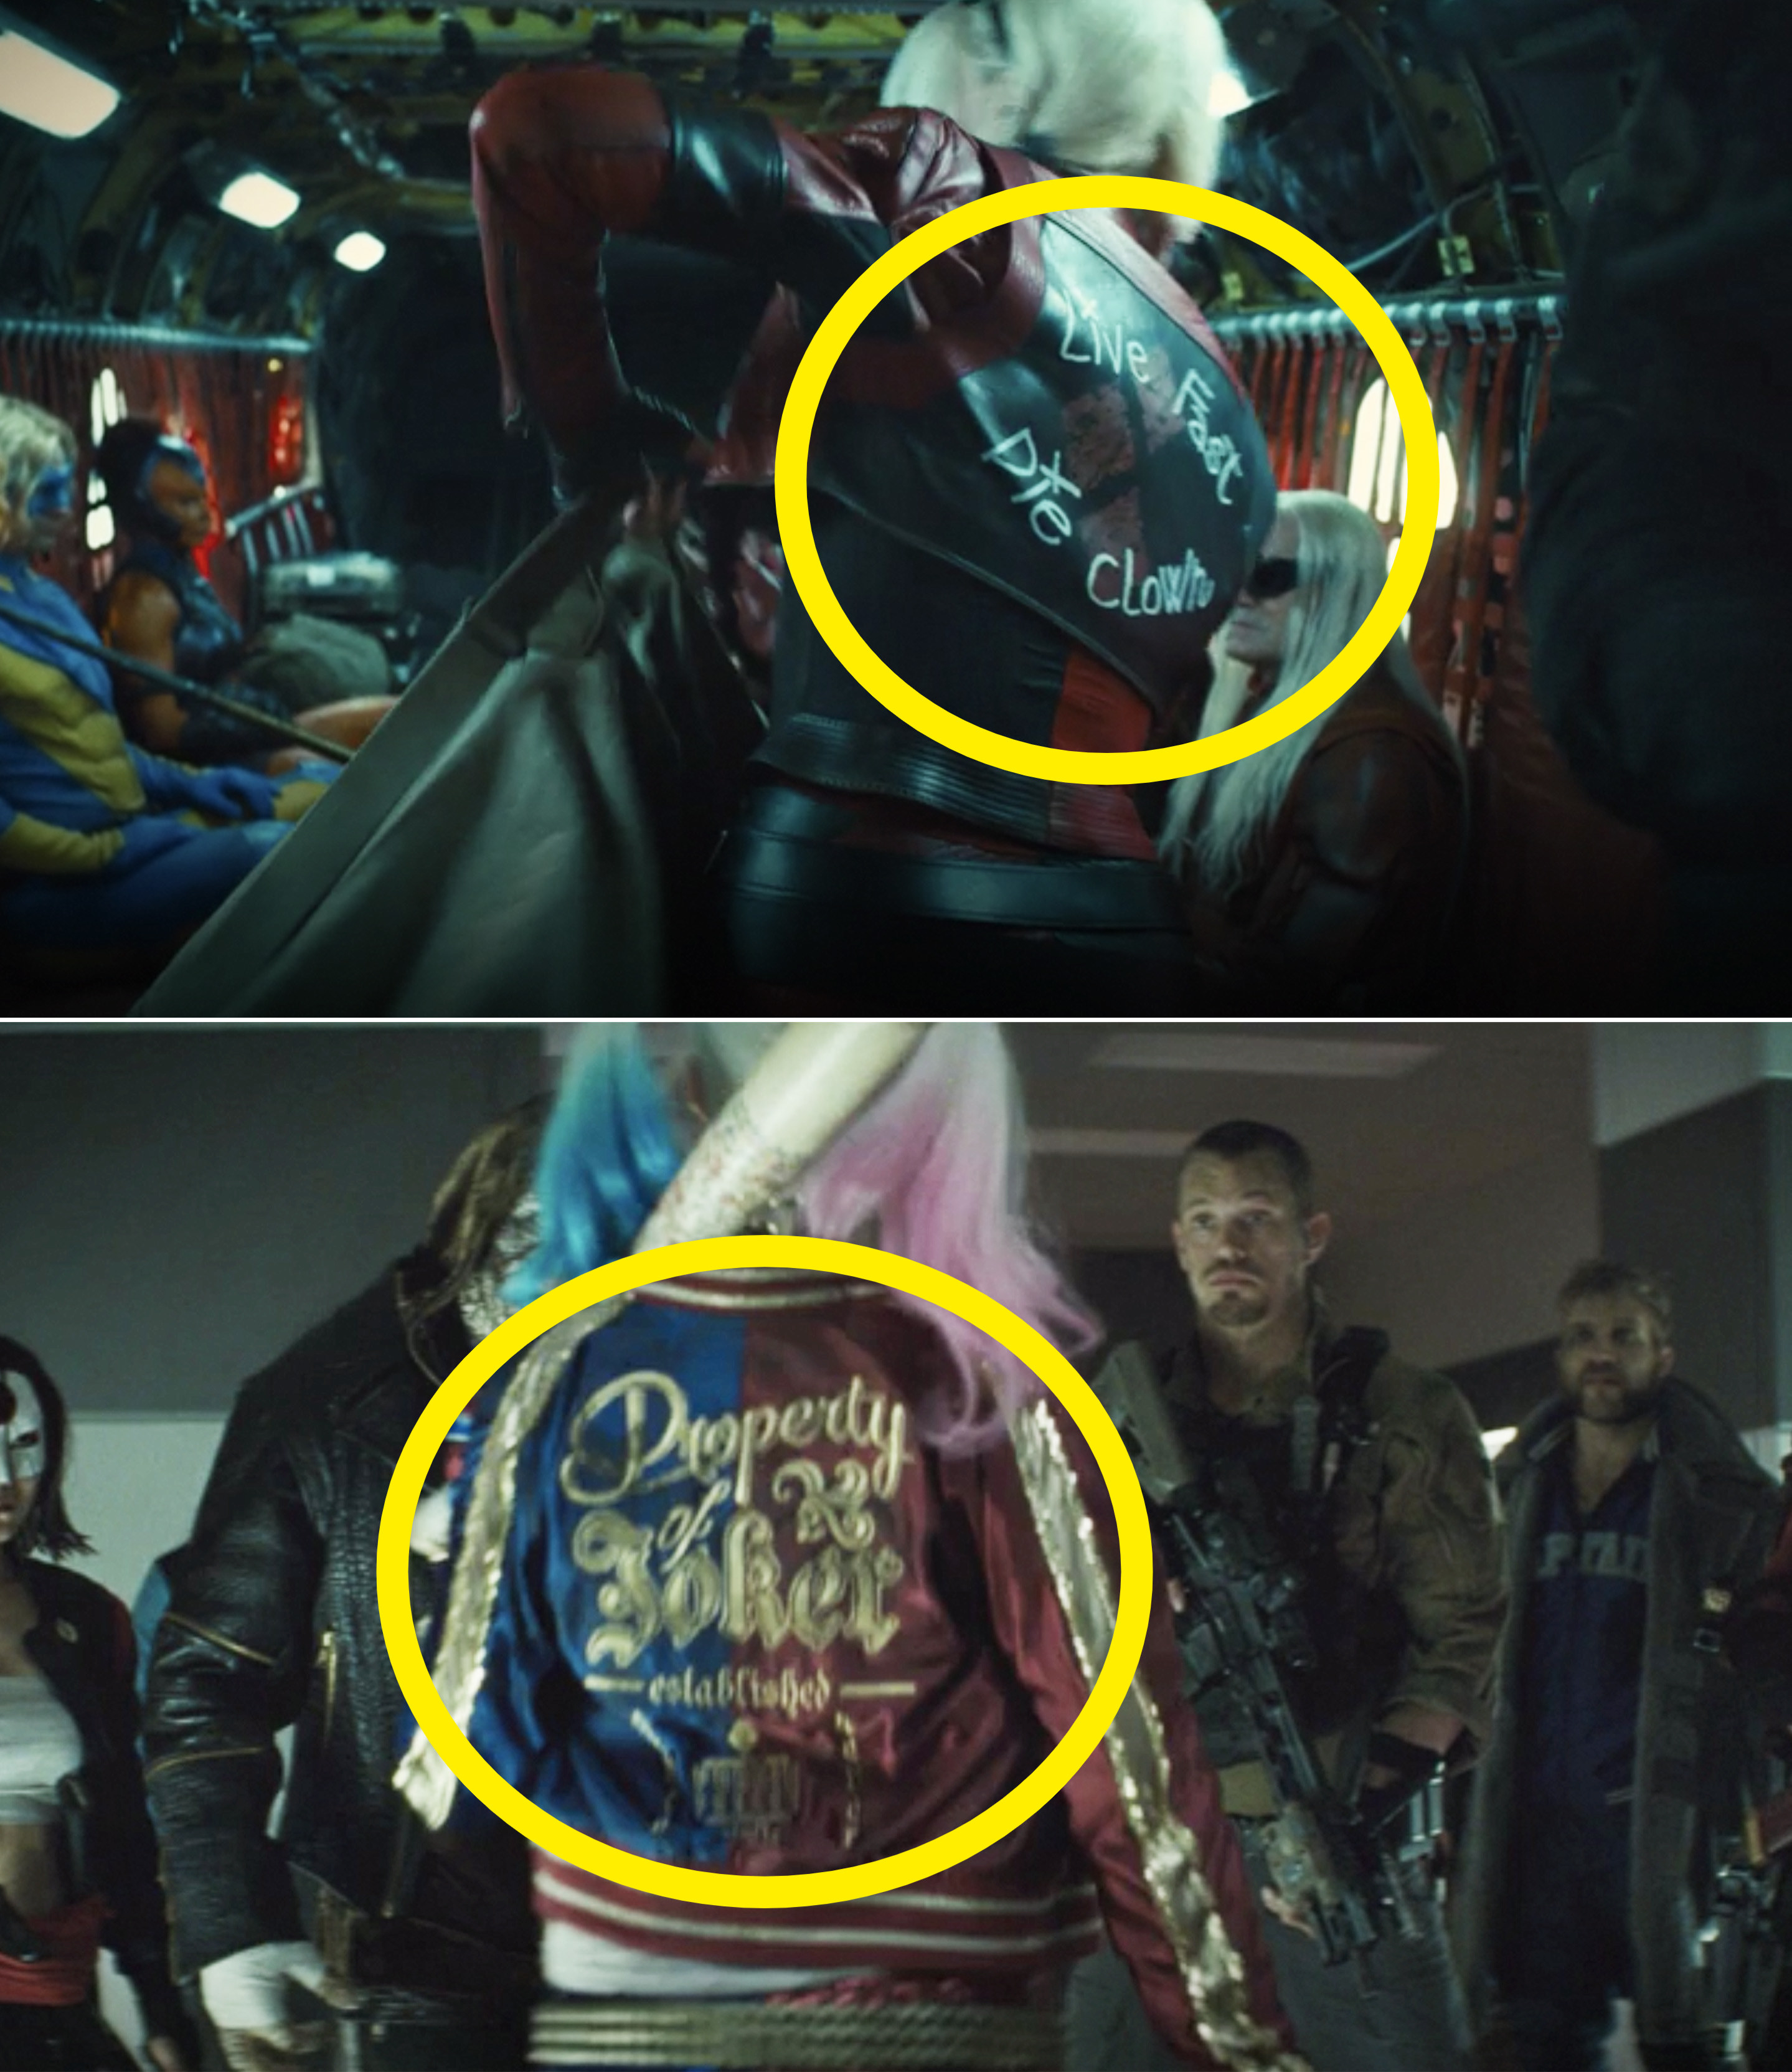 Harley's jacket in The Suicide Squad vs. in 2016